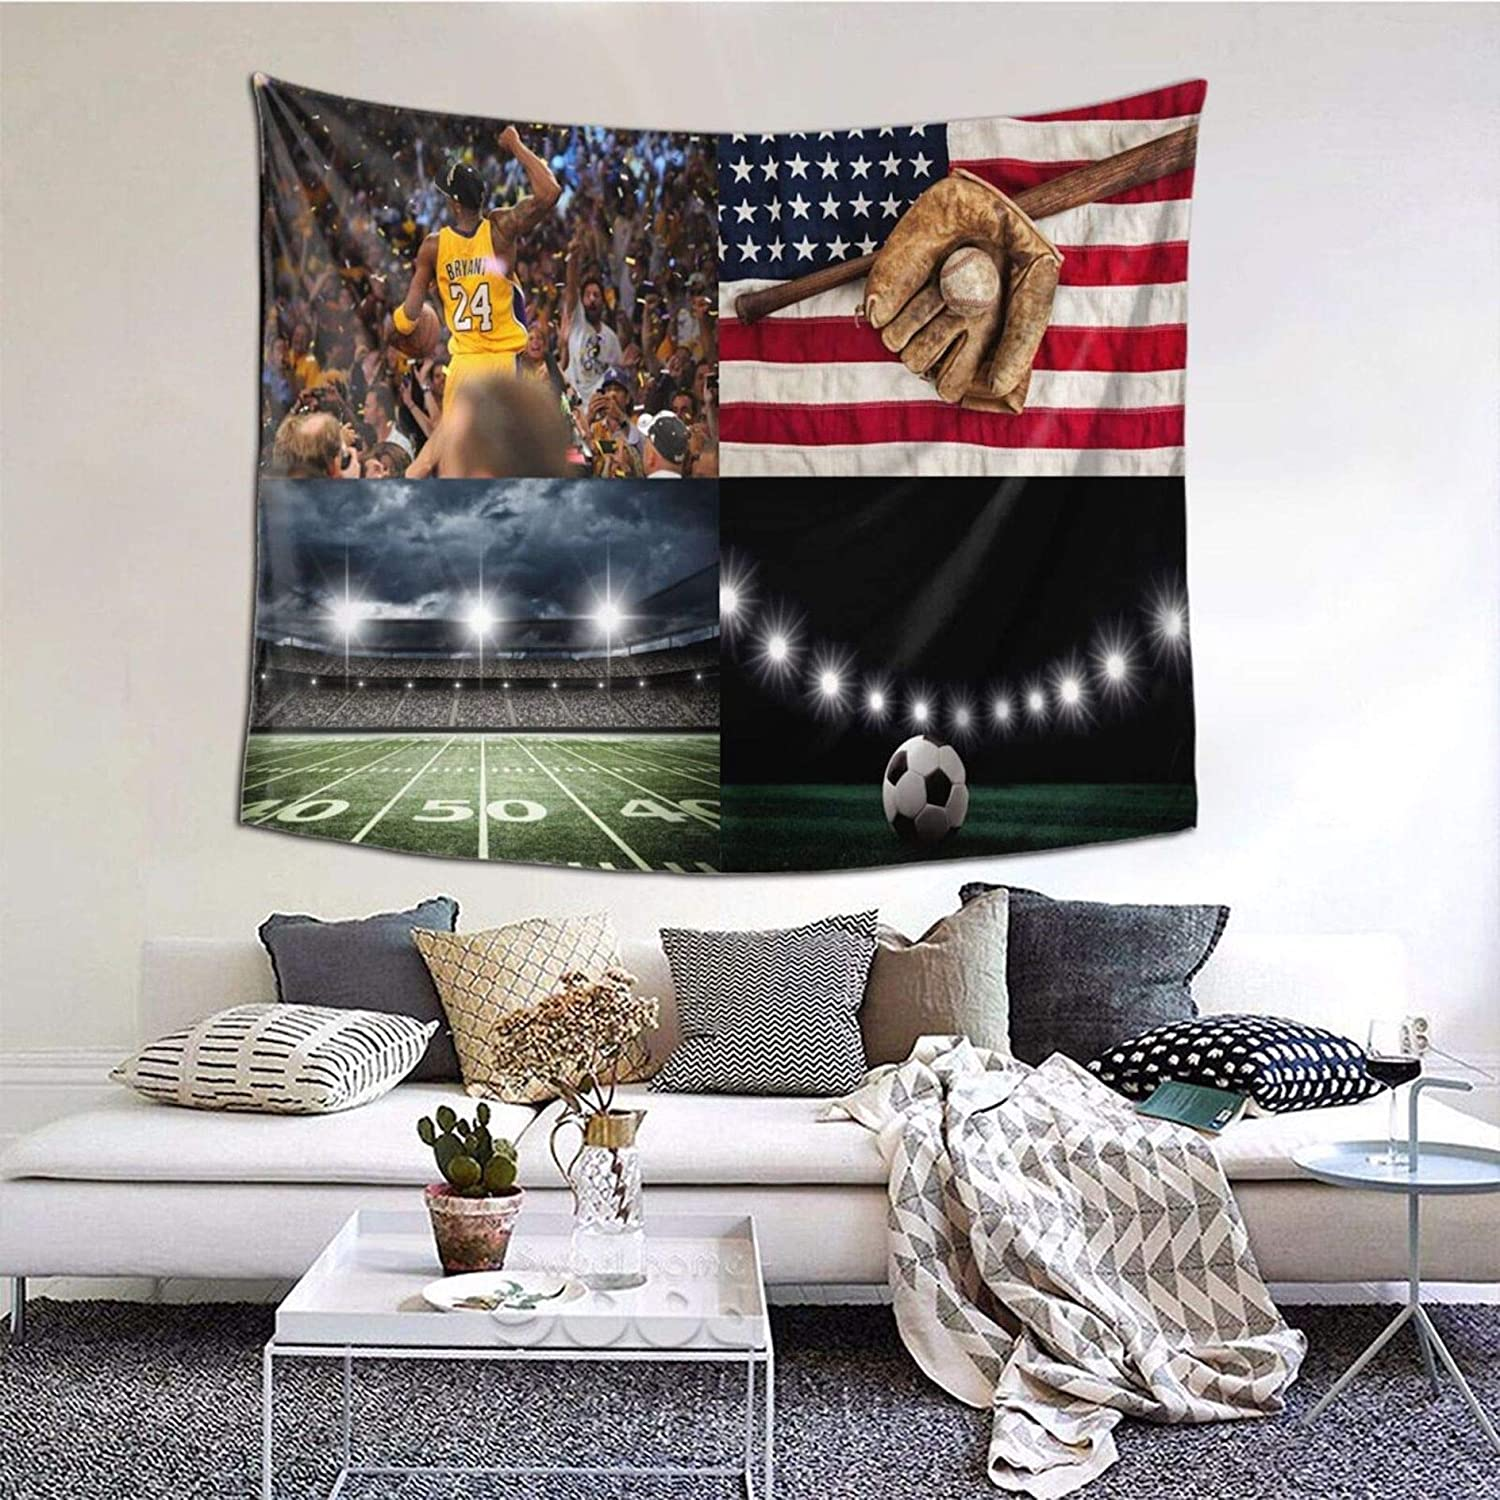 Sports themed room decor for boys room decro basketball tapestry Baseball soccer tapestry football Home Decor Wall Hanging for Living Room Bedroom Dorm 40x60 Inches